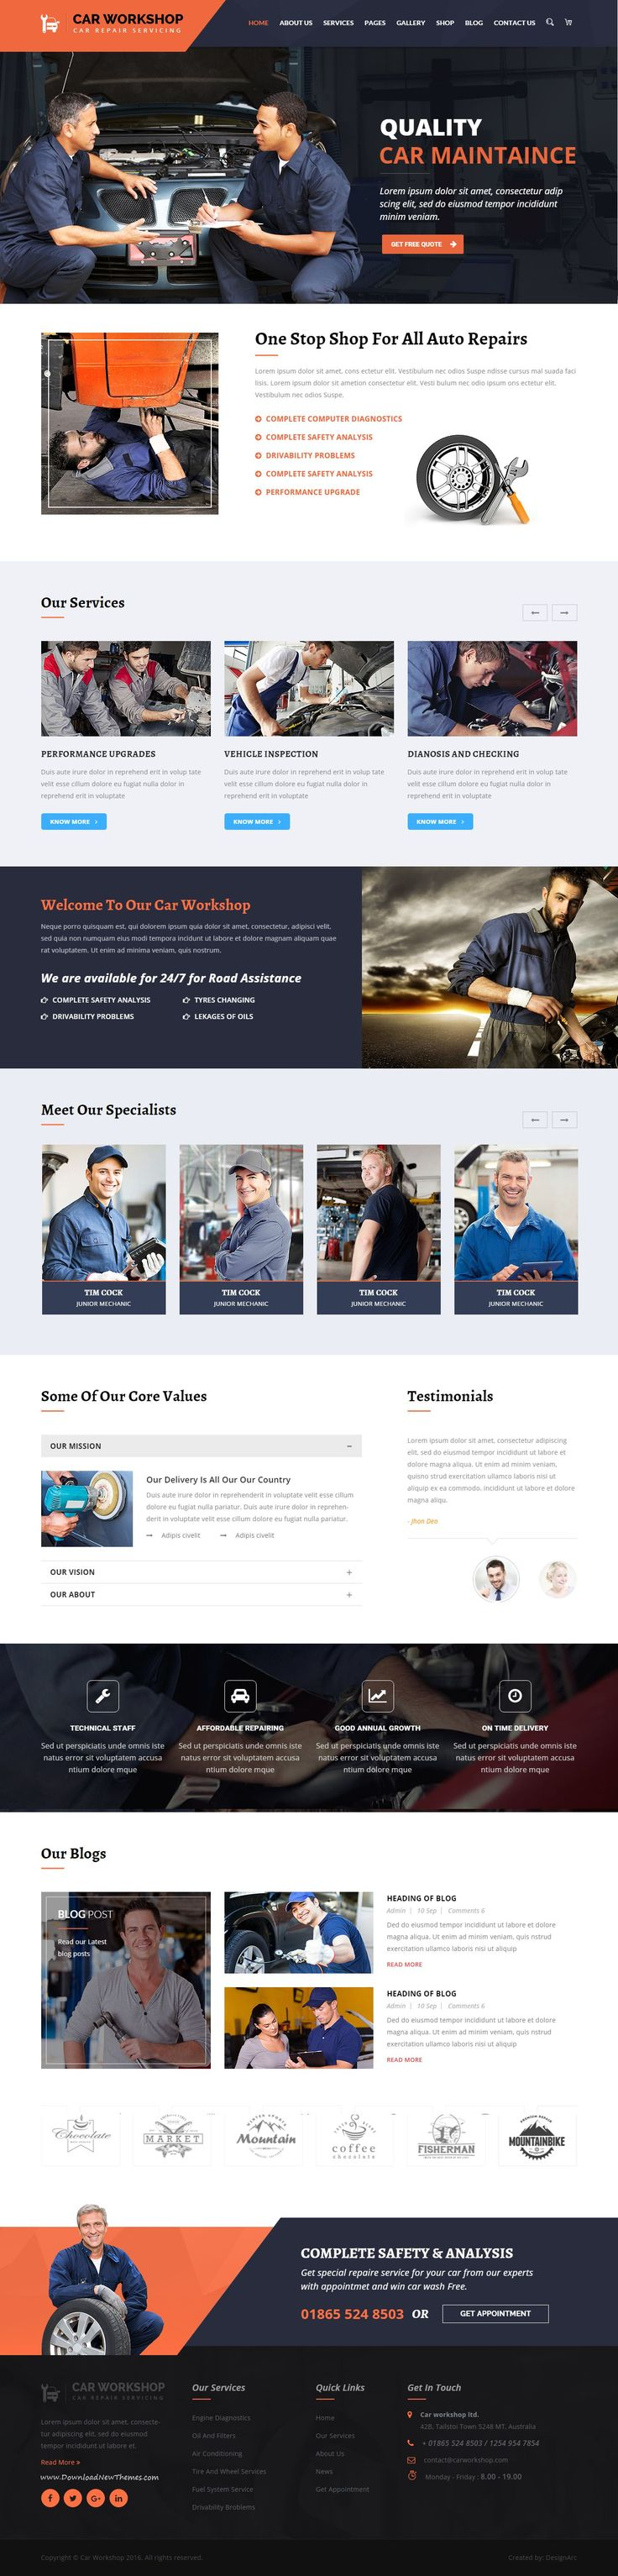 Car workshop car workshop html template is designed specially for workshop auto mechanic